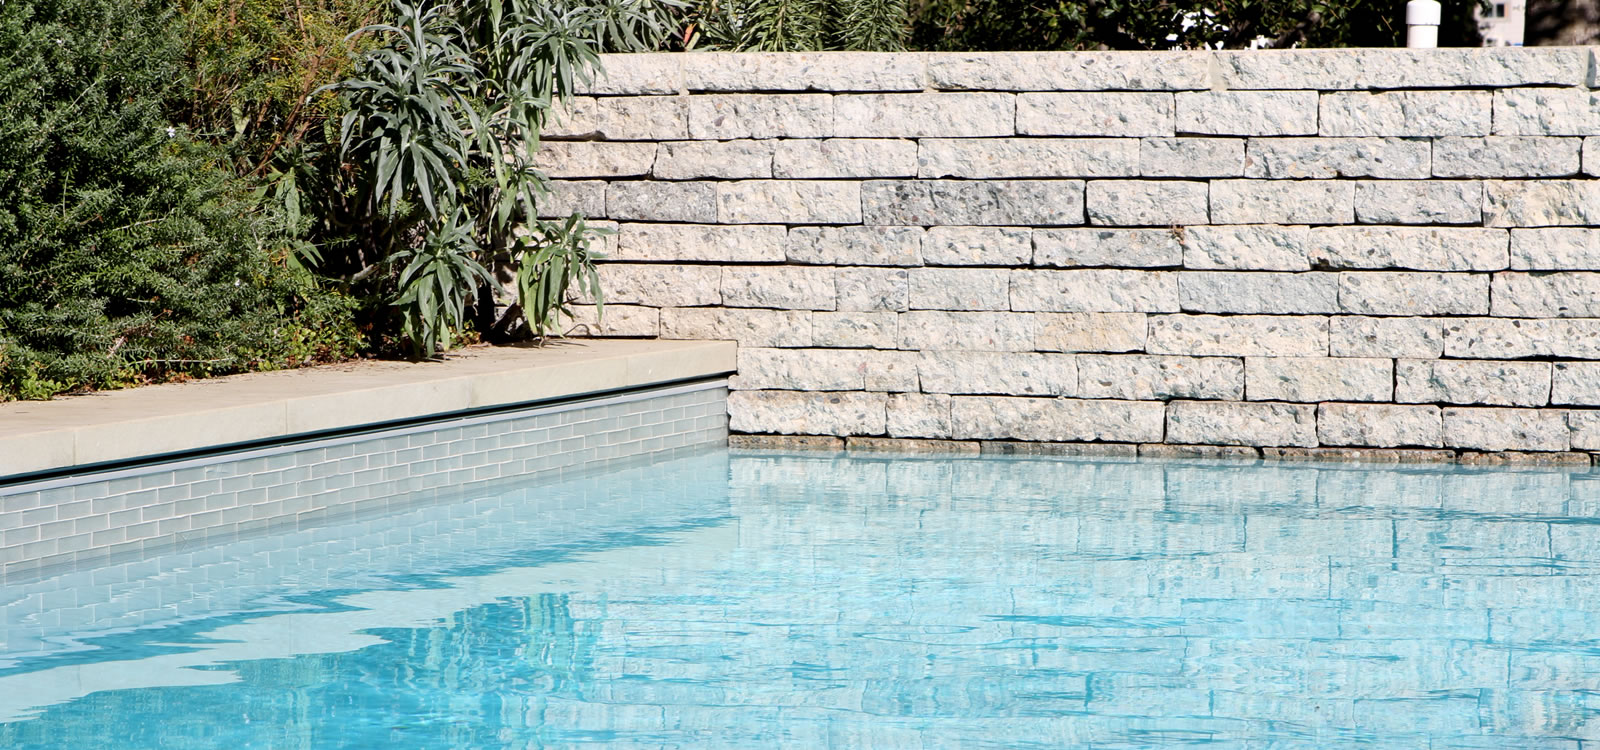 Los Angeles Pool Amp Spa Design With Bbq Island And Fire